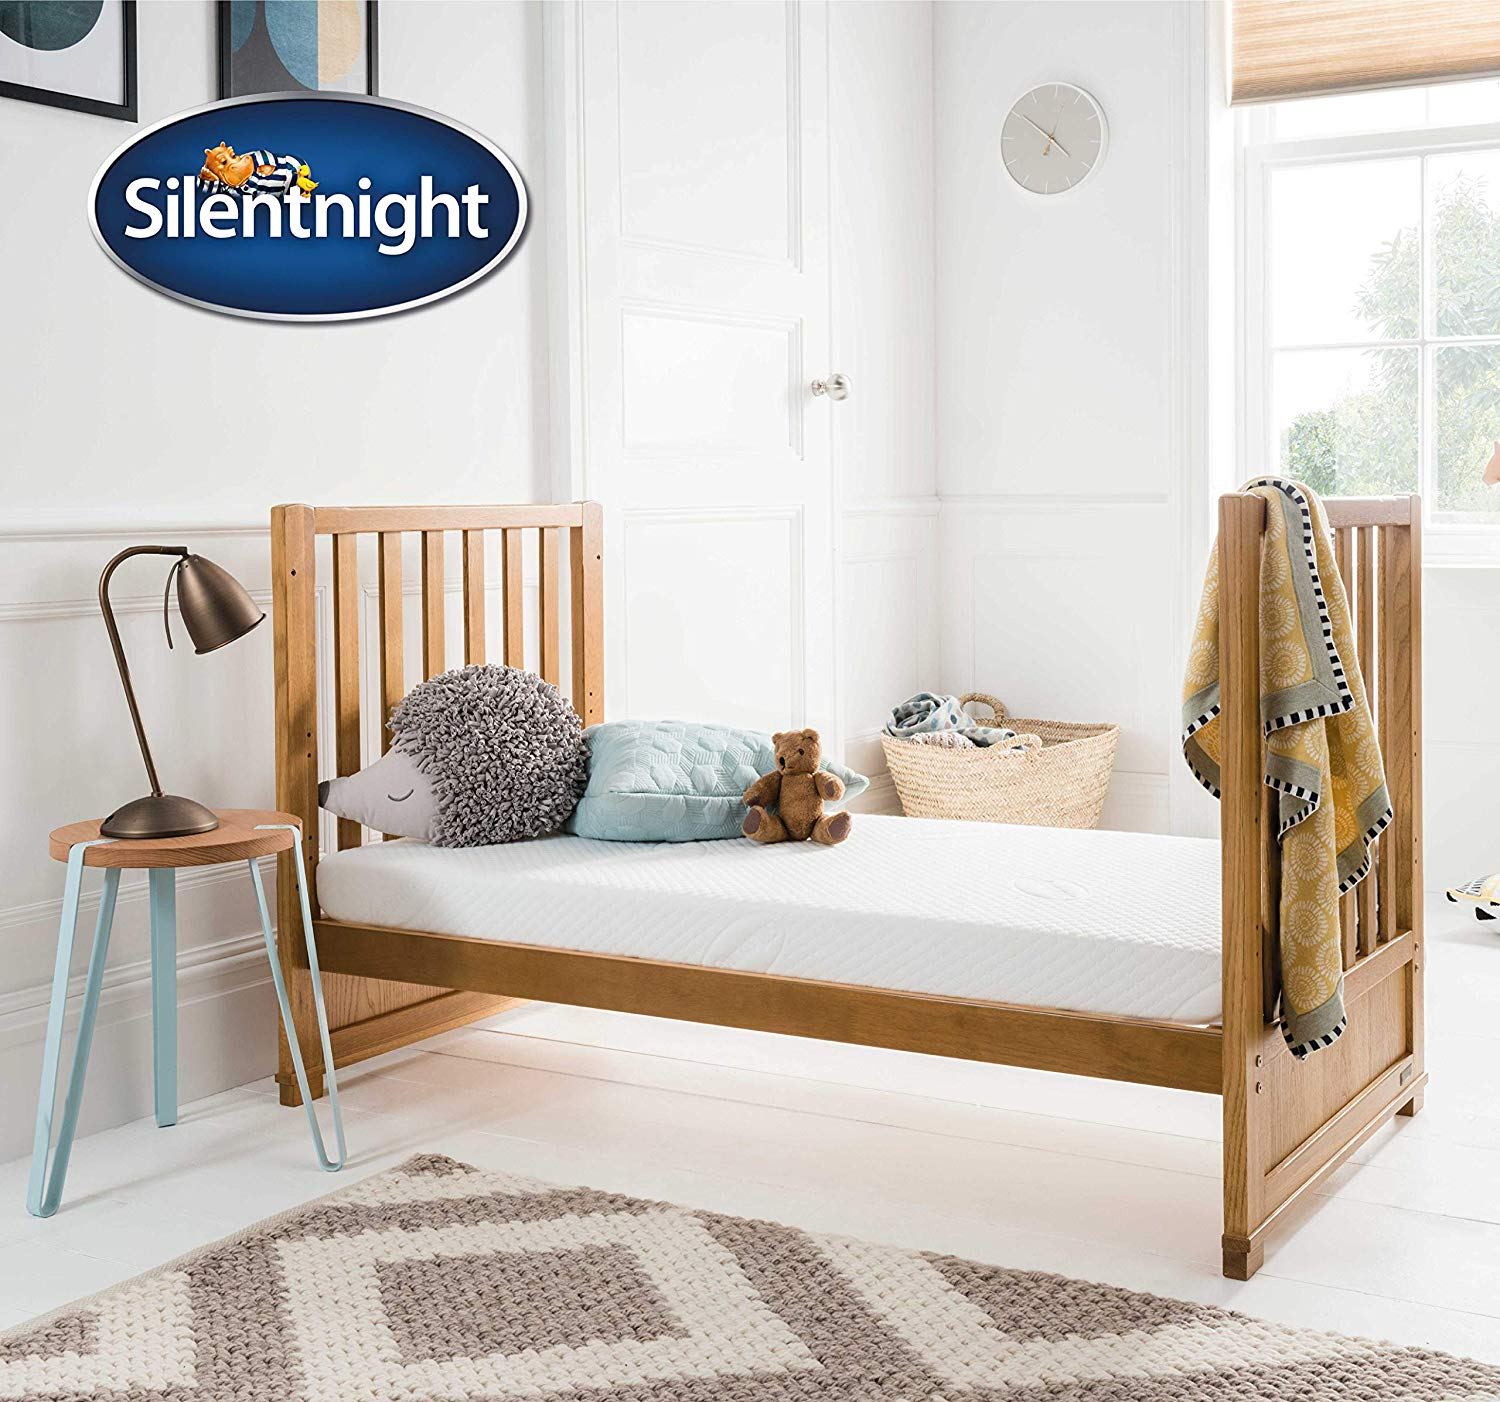 silentnight cot bed mattress.jpg